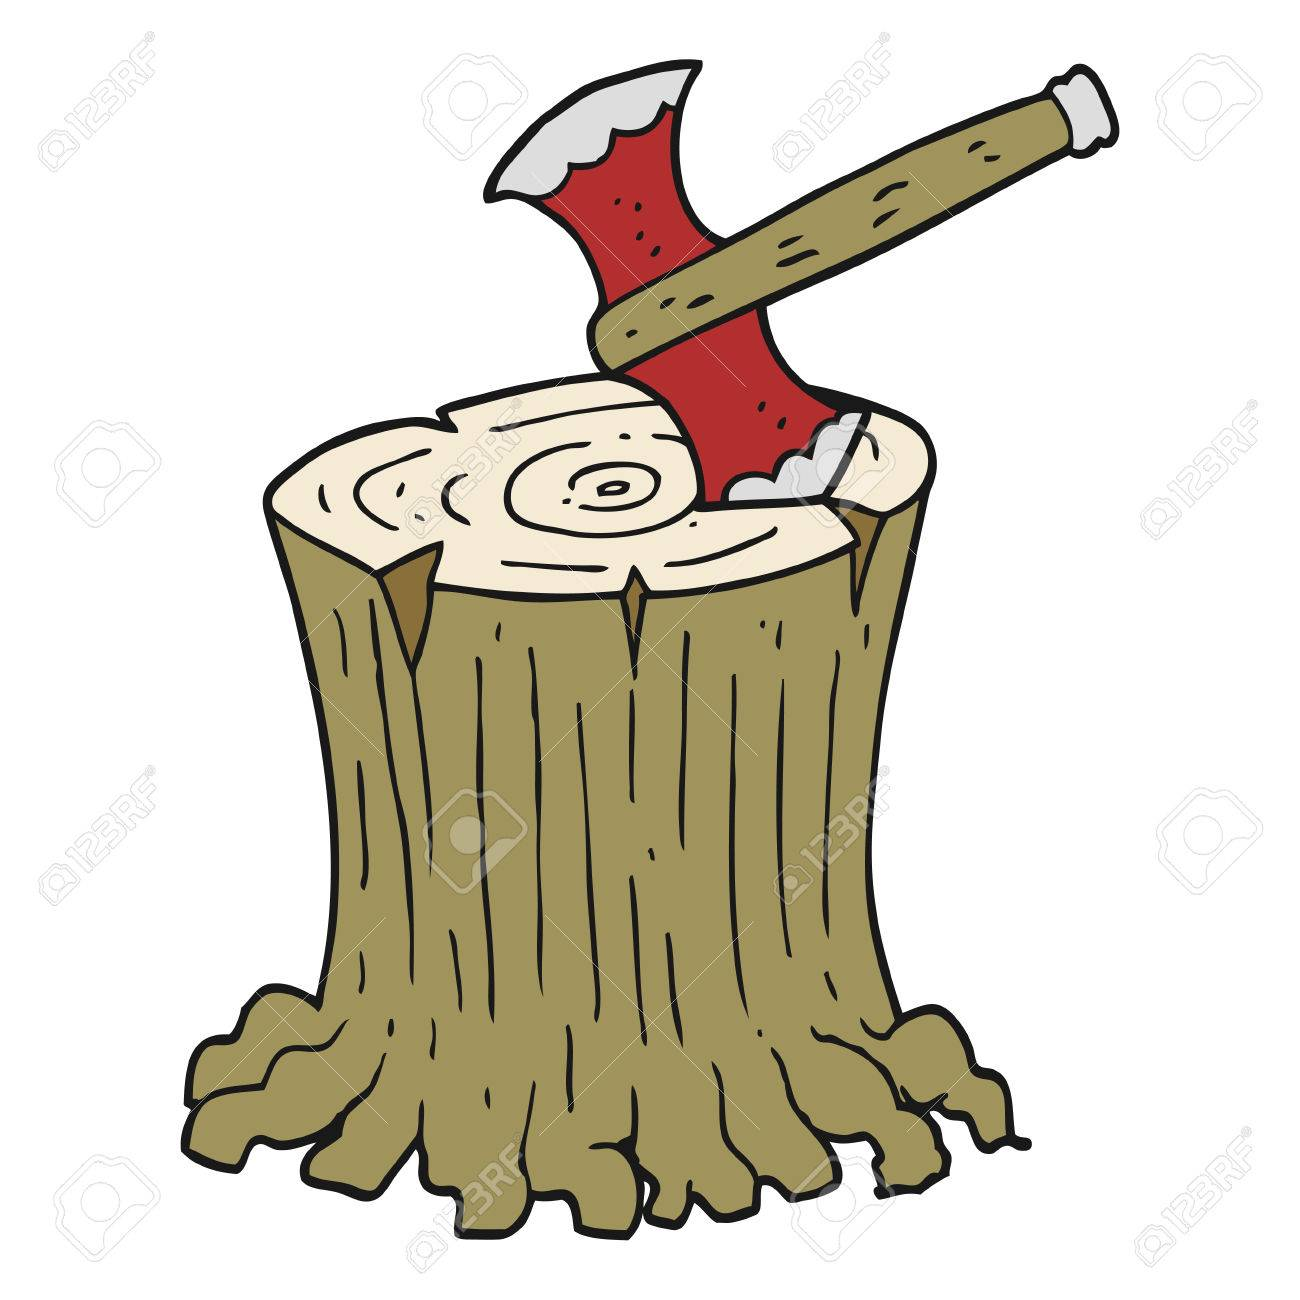 Freehand Drawn Cartoon Axe In Tree Stump Royalty Free Cliparts Vectors And Stock Illustration Image 53982459 Choose from 470000+ cartoon tree stump graphic resources and download in the form of png, eps, ai or psd. freehand drawn cartoon axe in tree stump